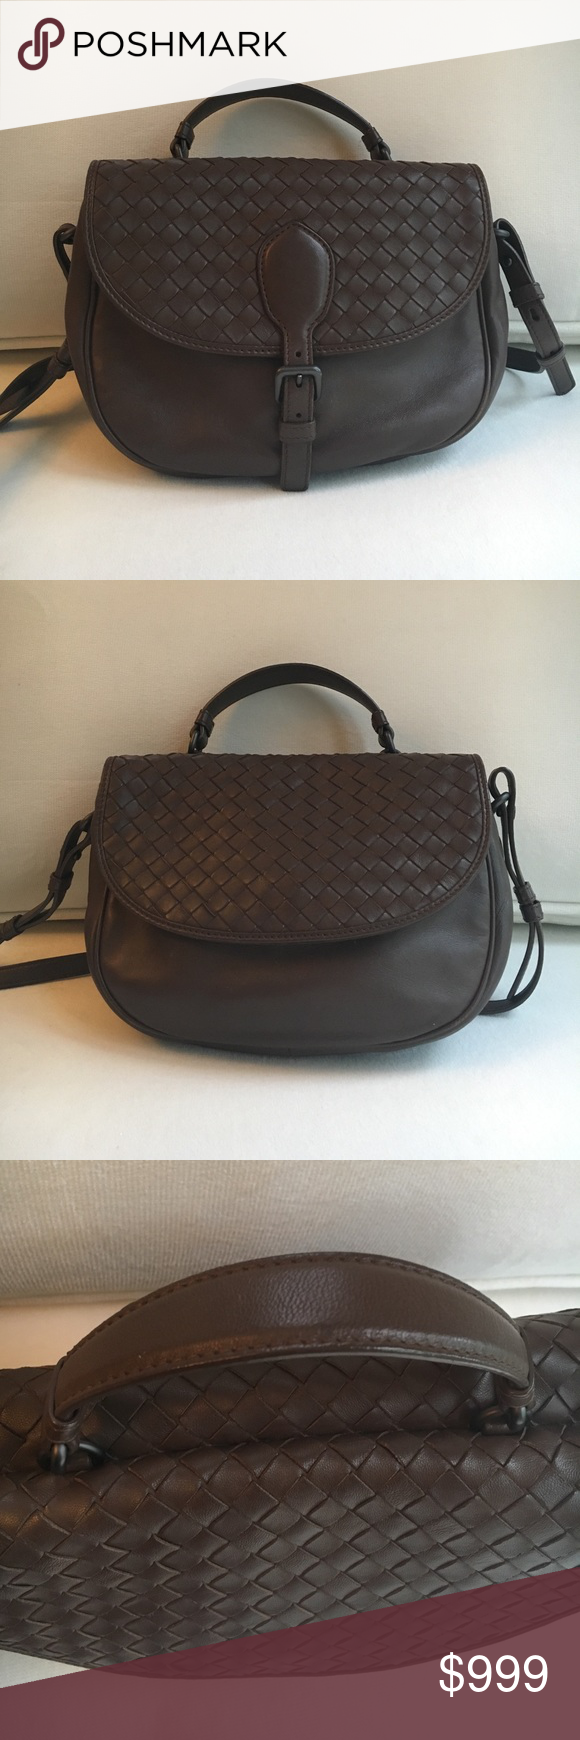 Bottega Veneta Crossbody Bag In mint- new condition, this genuine soft leather Bottega Veneta bag is a classic and a timeless piece. It features flaps of different design on both faces of the bag, one with a snap magnet button and another with a adjustable strap on belt enclosure. It is so chic and in such amazing quality! Bottega Veneta Bags Crossbody Bags